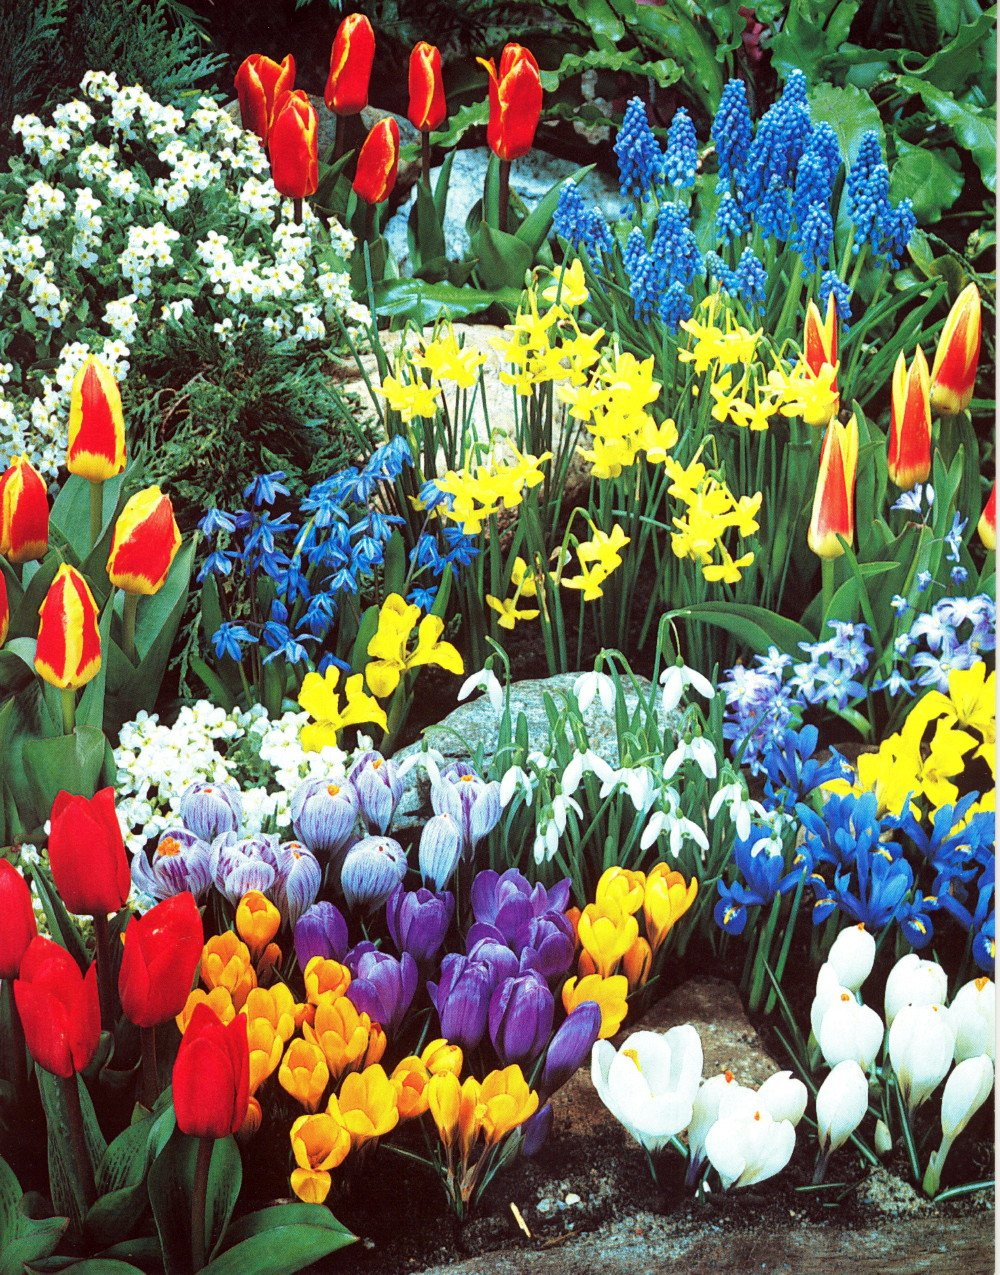 A Complete Spring Garden - 50 Bulbs for 50 Days of Continuous Blooms by Hirts: Bulbs